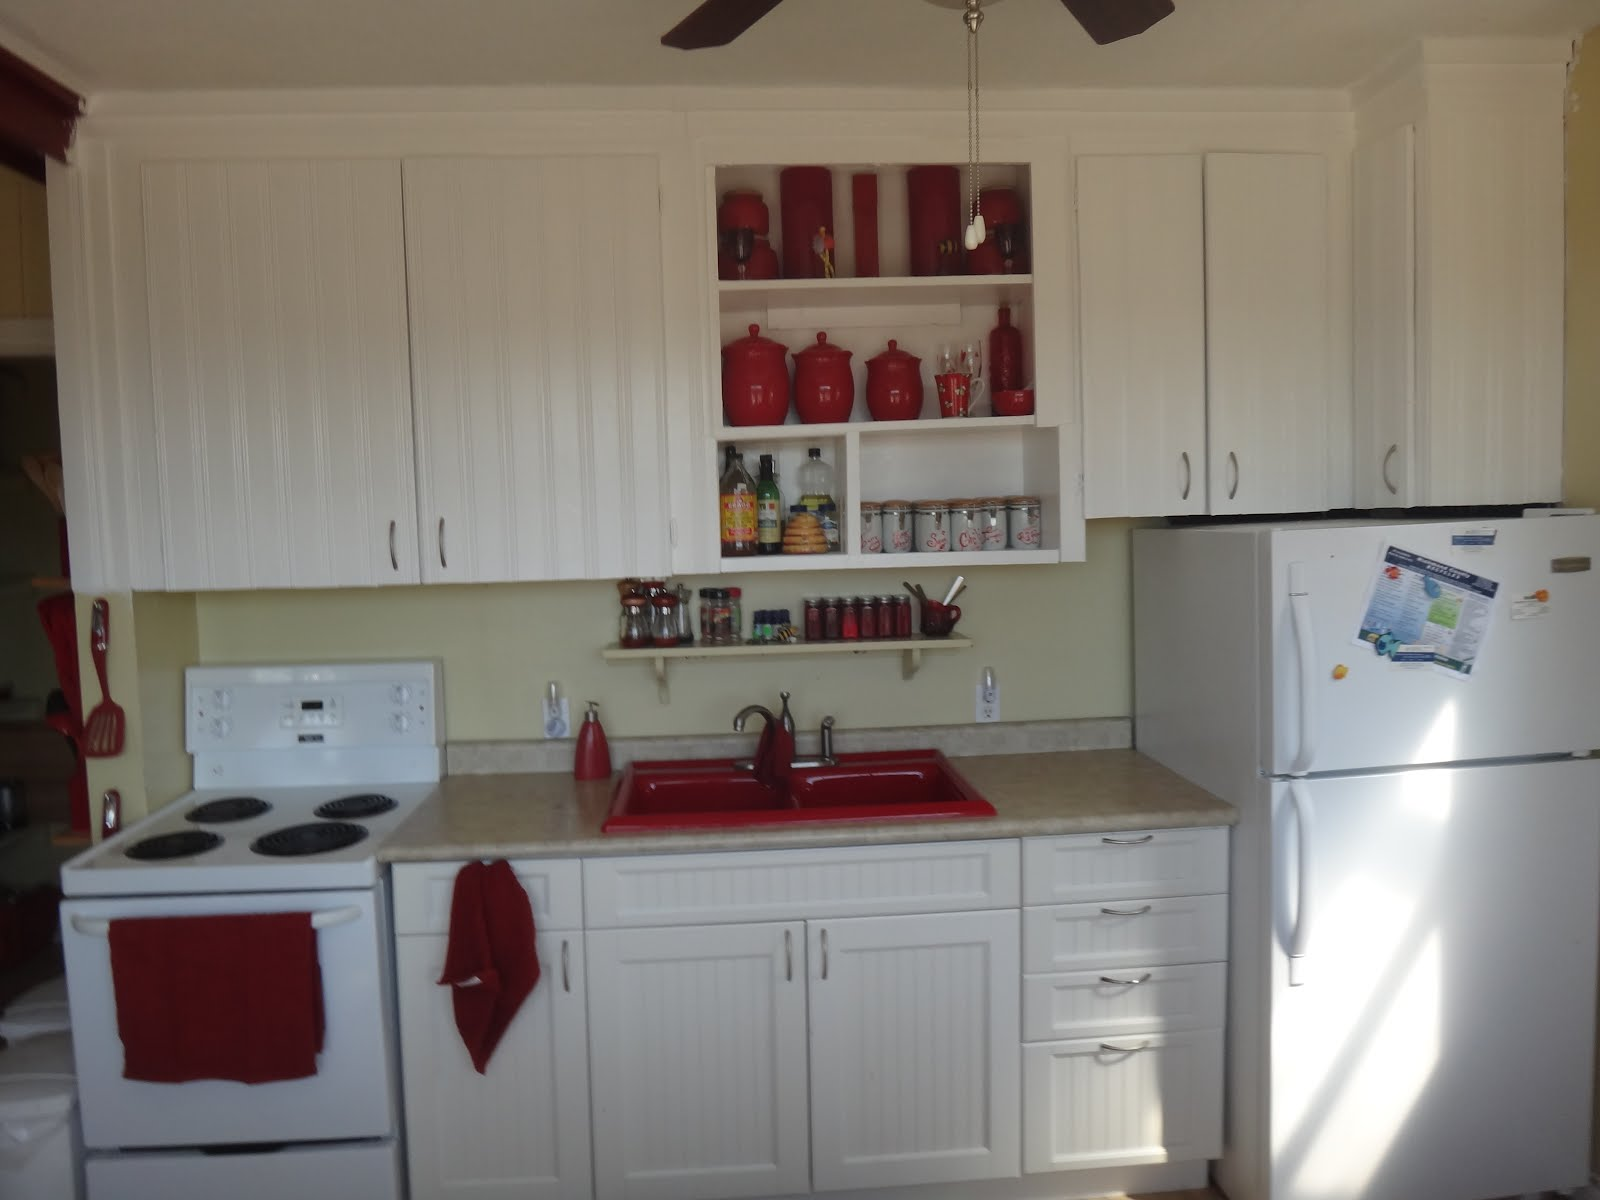 finally finished kitchen cabinets kitchen cabinets okc well now we have finally finished painting the upper cabinets woohoo it really brightens up the kitchen and gives a sorta kinda feeling of the kitchen